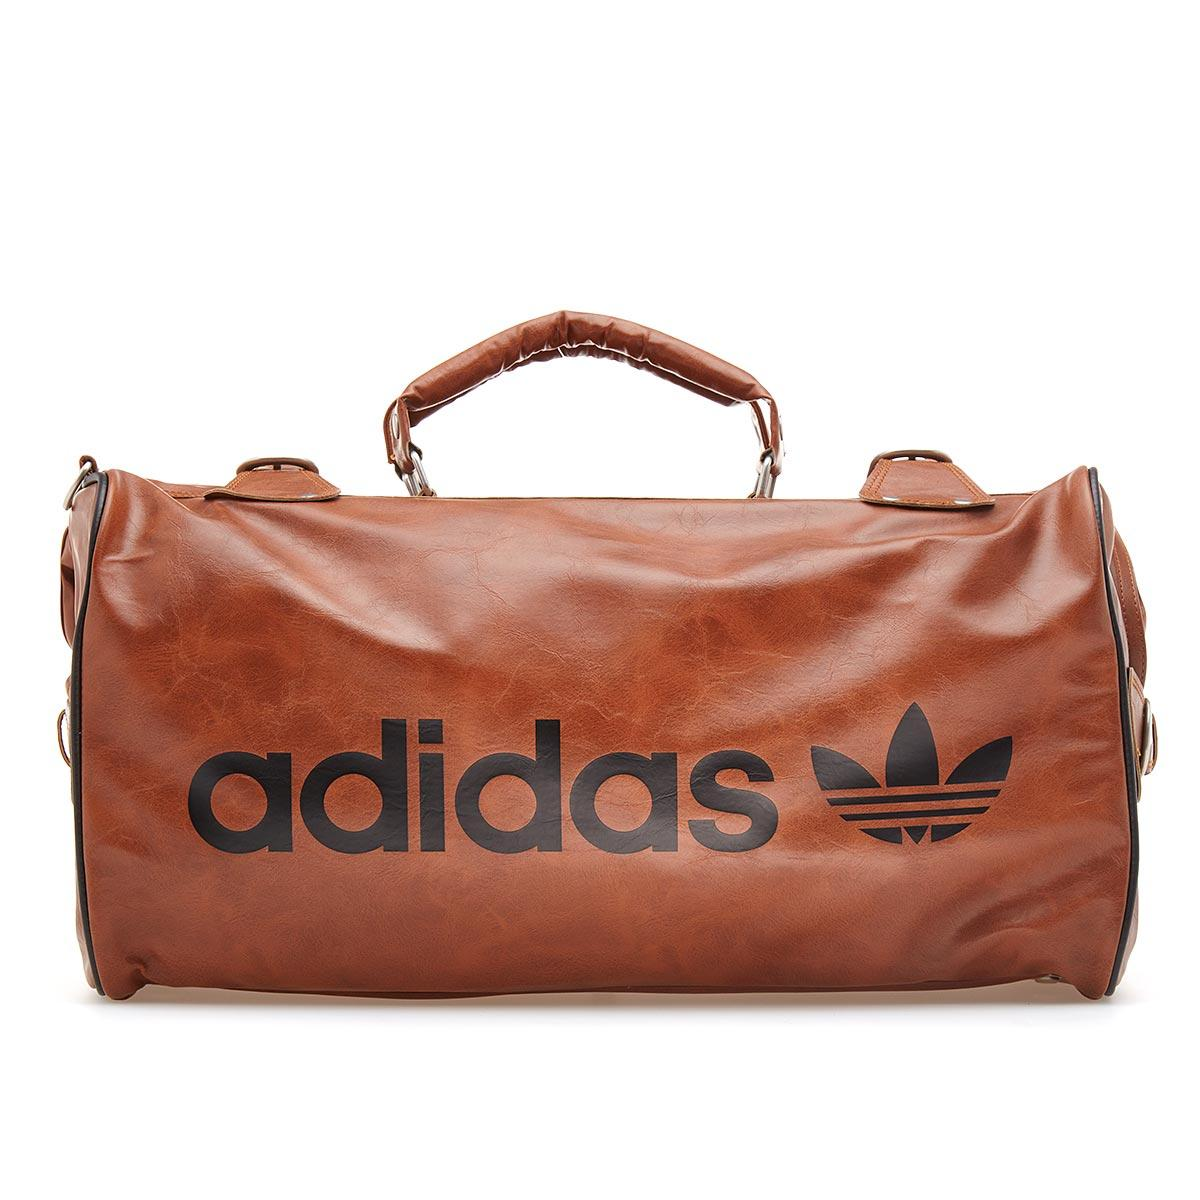 adidas Originals Sp Archive Bag in Brown for Men - Lyst 7466a773df2f4